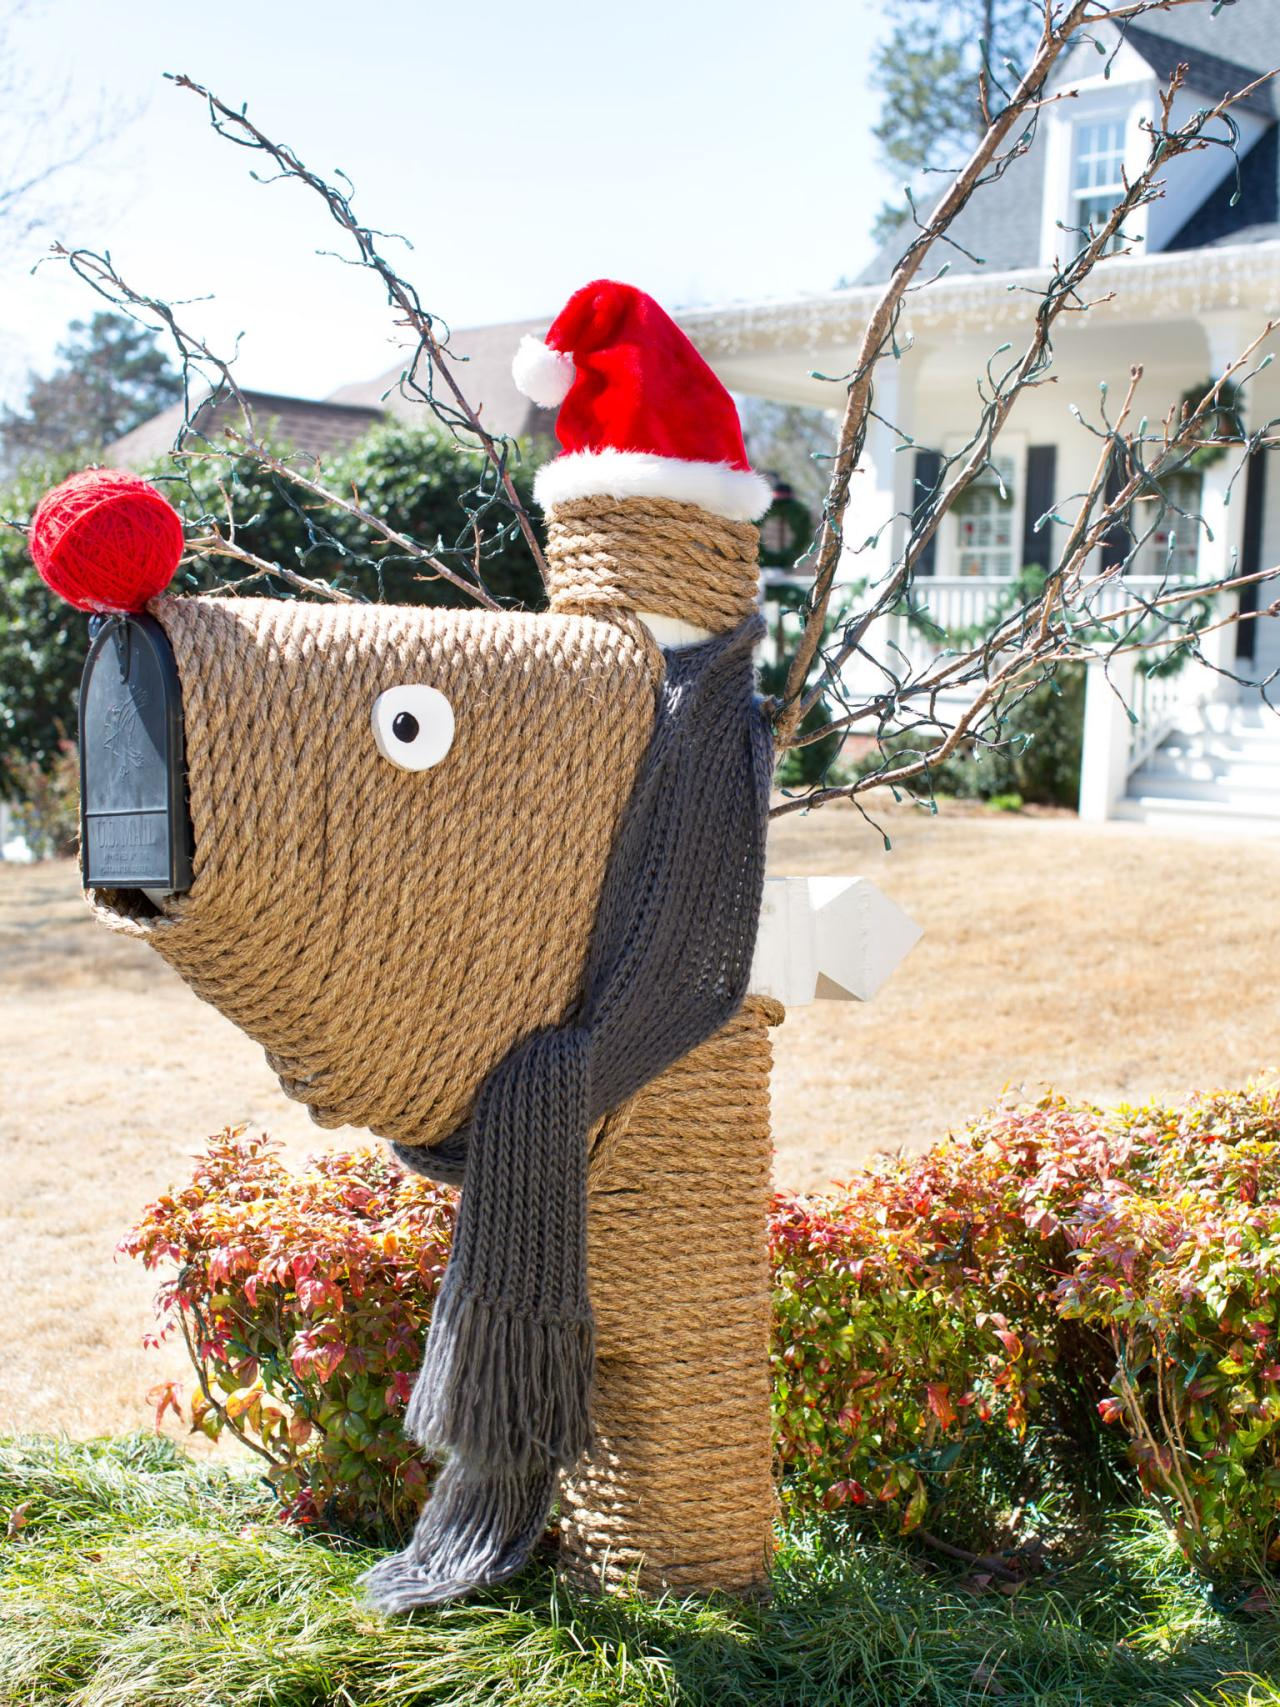 quirky and cute big and little kids alike are sure to adore this reindeer design rope wound around a mailbox frame and base creates the body of the - Christmas Mailbox Decorations Ideas